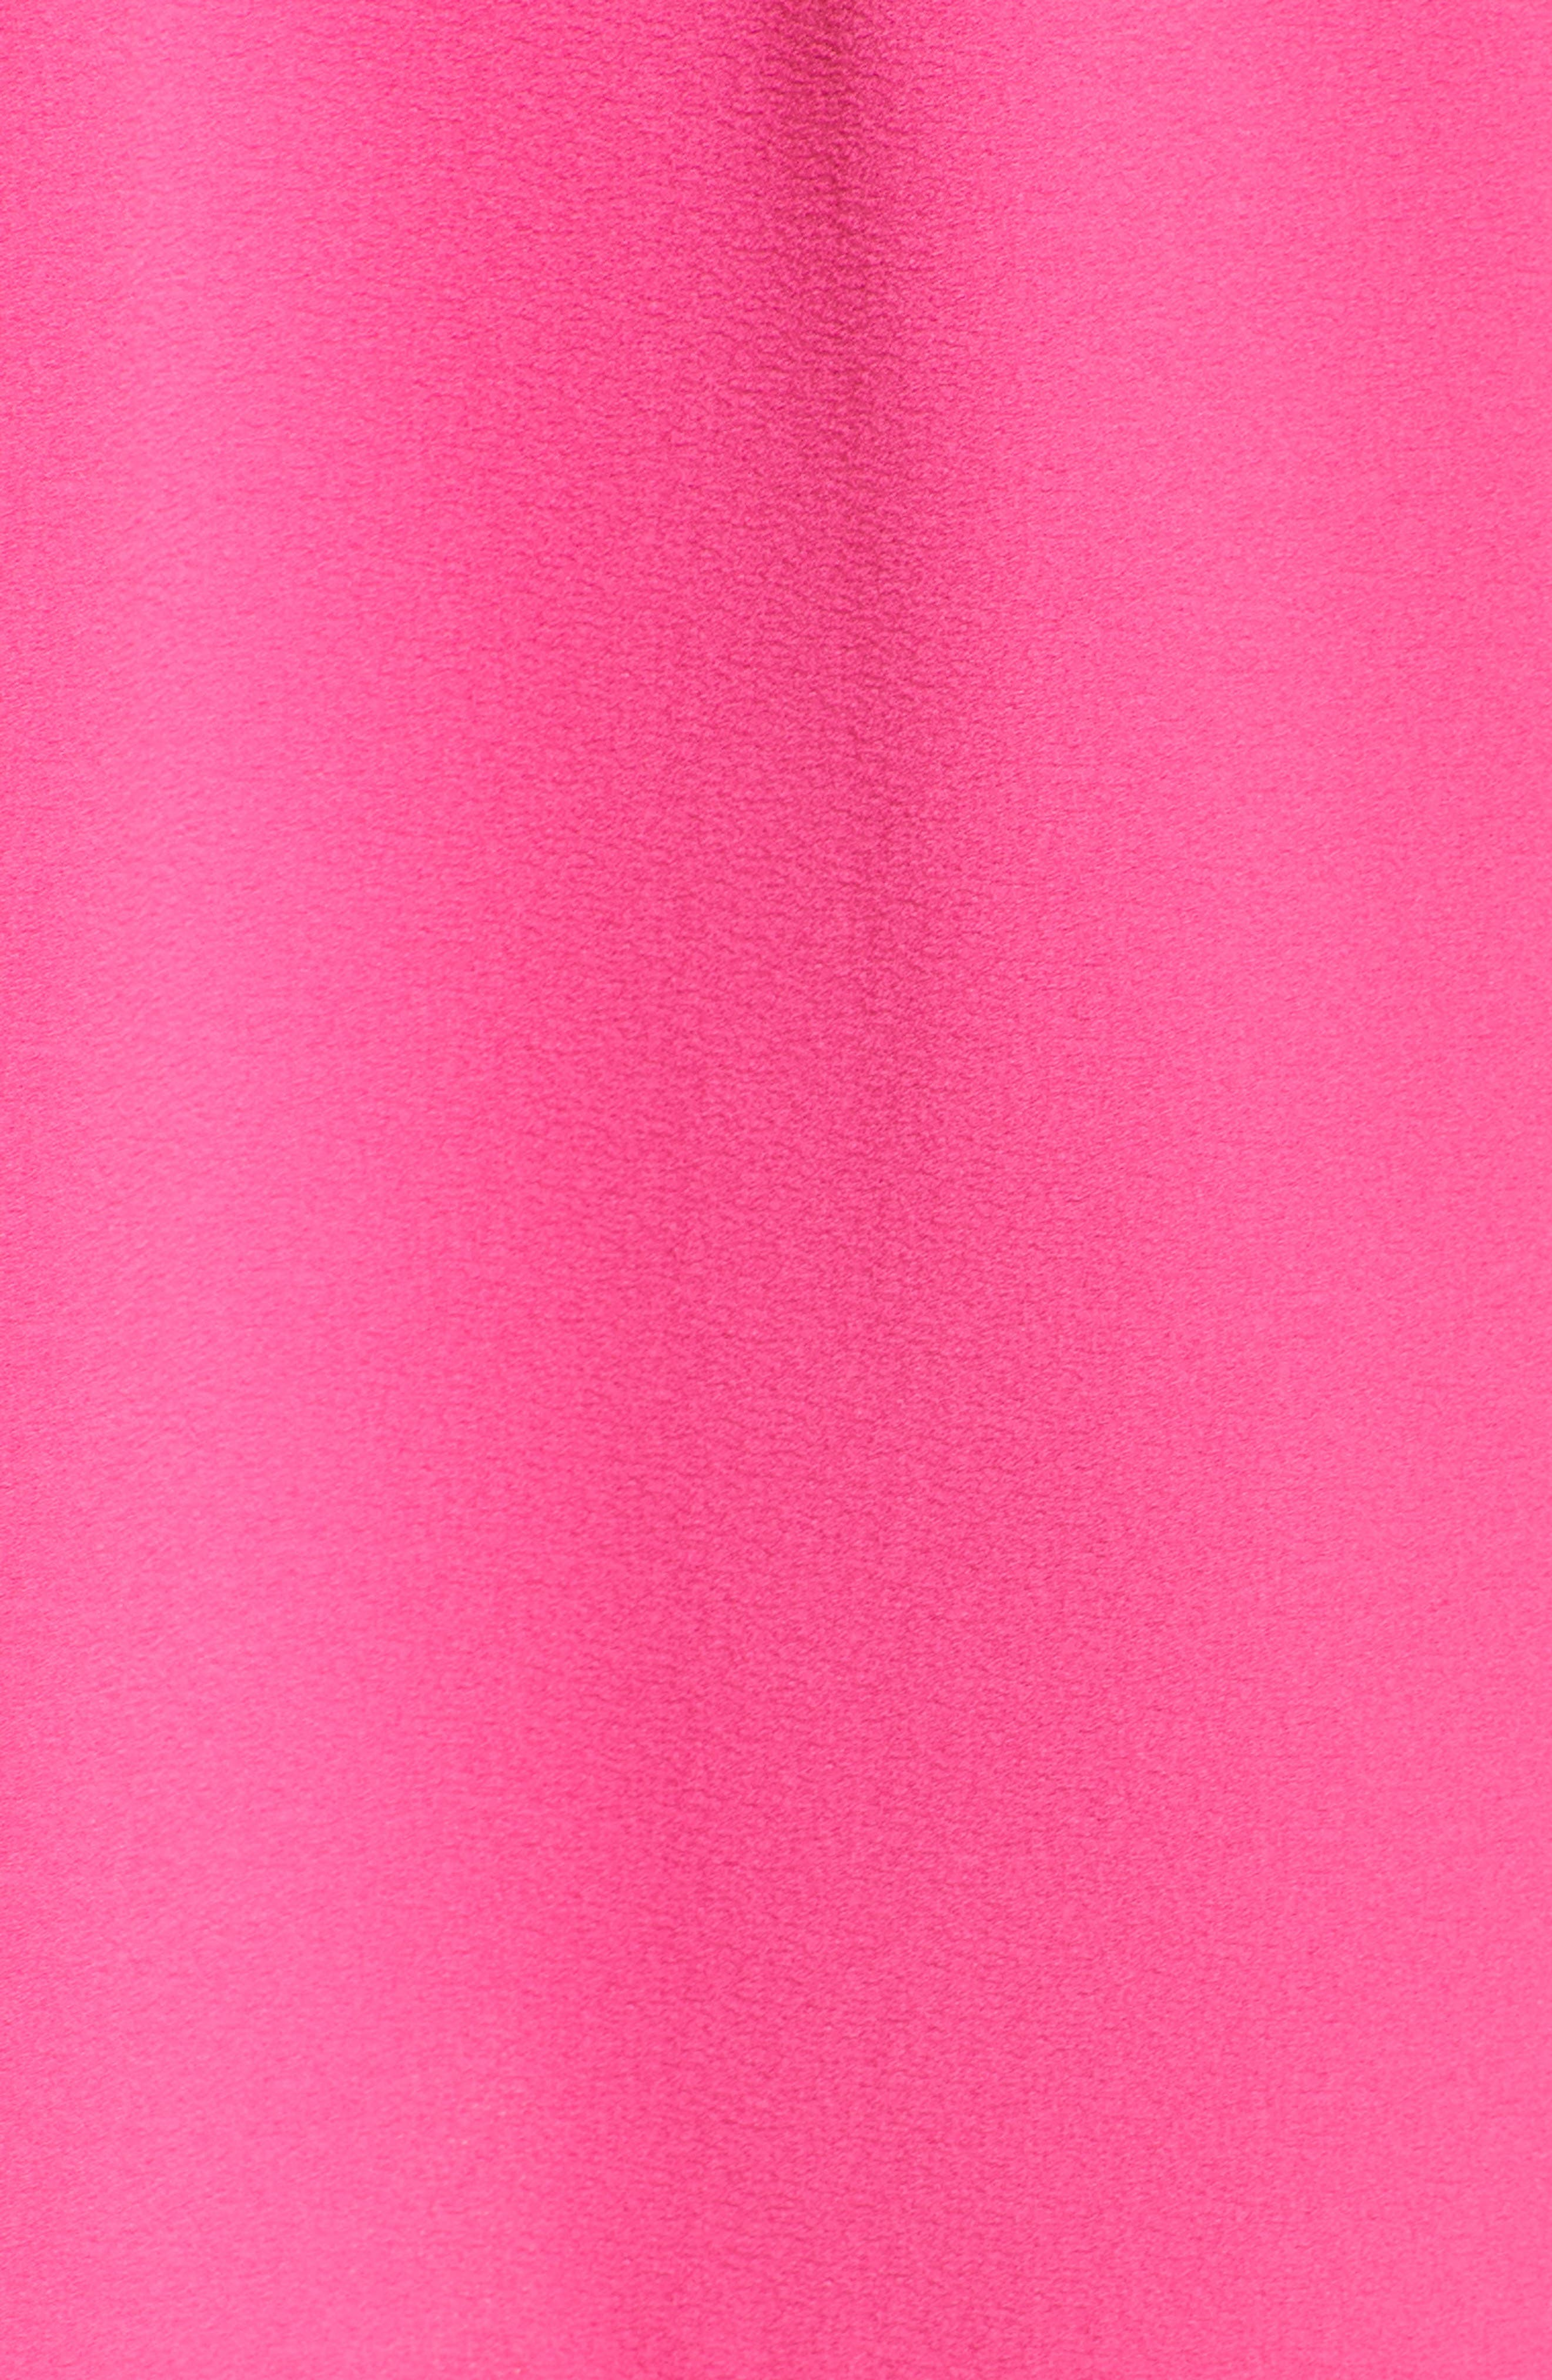 Tie Front Sheath Dress,                             Alternate thumbnail 6, color,                             Hot Pink